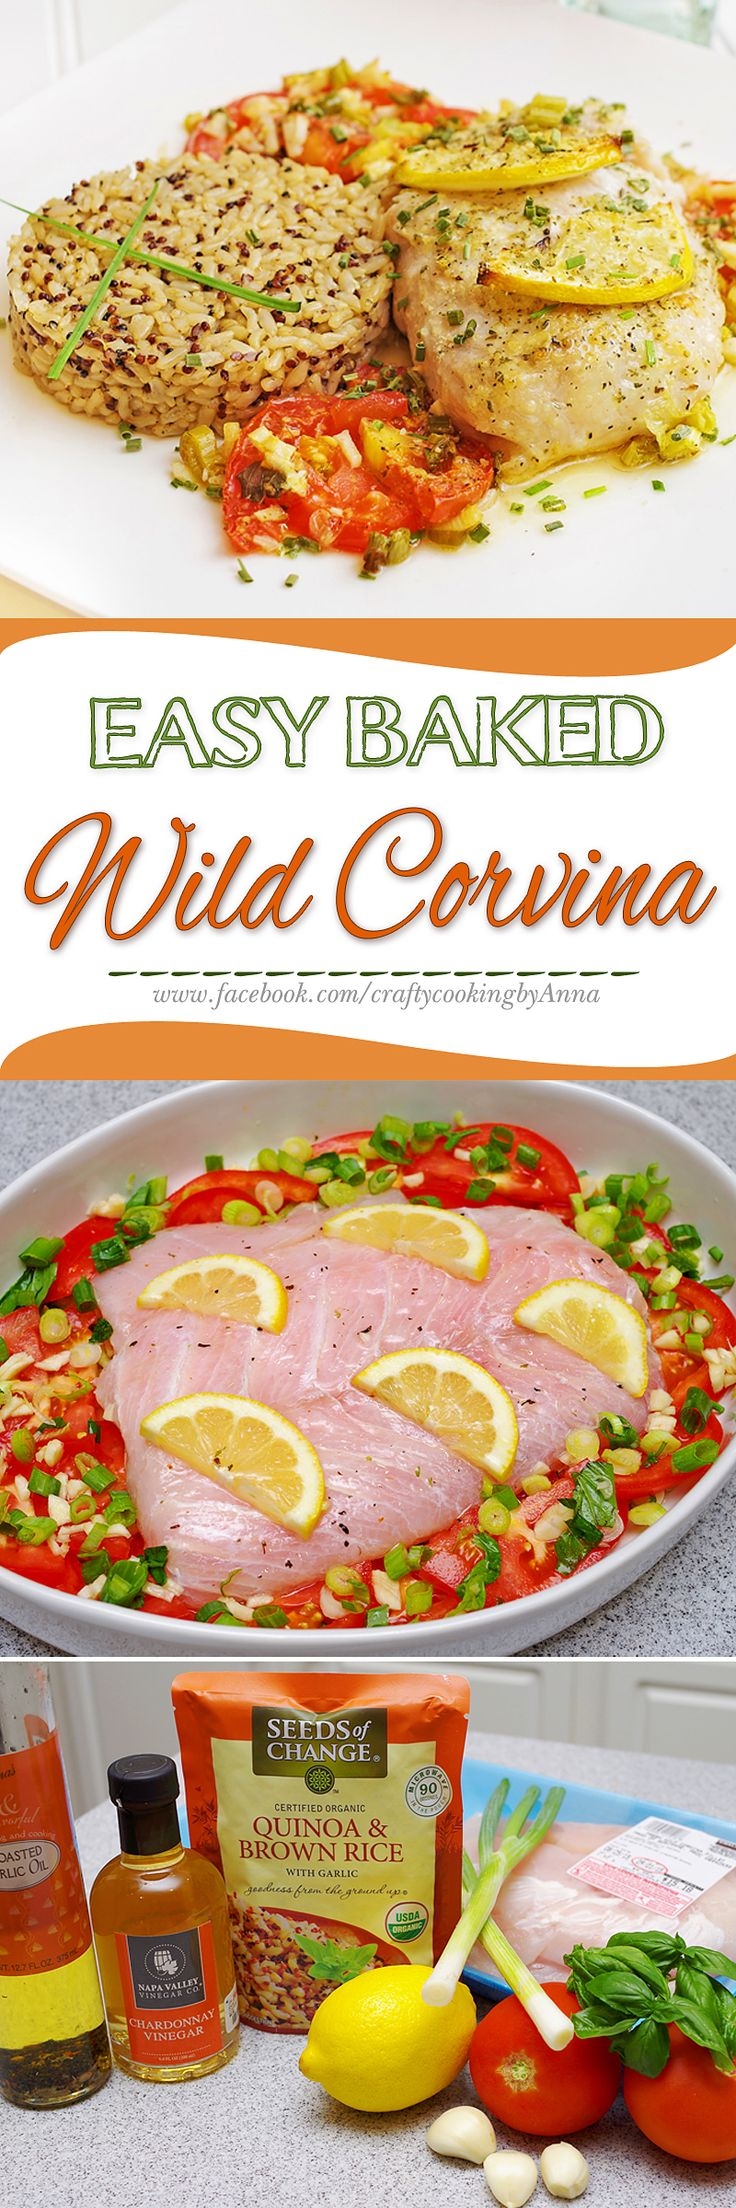 EASY Baked Wild Corvina with Tomatoes, Onions and Garlic in Wine-Vinegar sauce! #Delicious #Latin #Fancy #Dinner If you like my recipes, please Follow Me - http://www.pinterest.com/annavil/  and Join Me - https://www.facebook.com/craftycookingbyAnna Thank you!!!